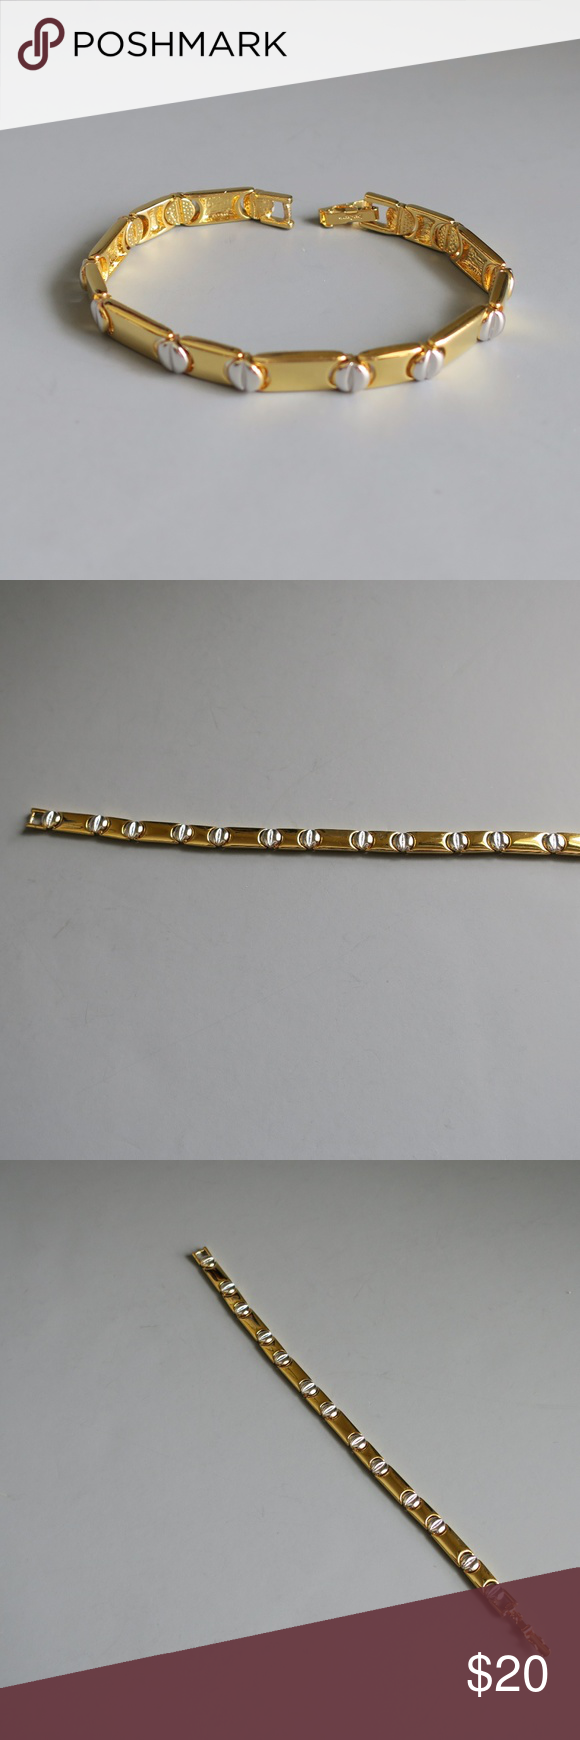 featuring screw accents threaded throughout designer bracelet head love white and nail closures gold pin cartier